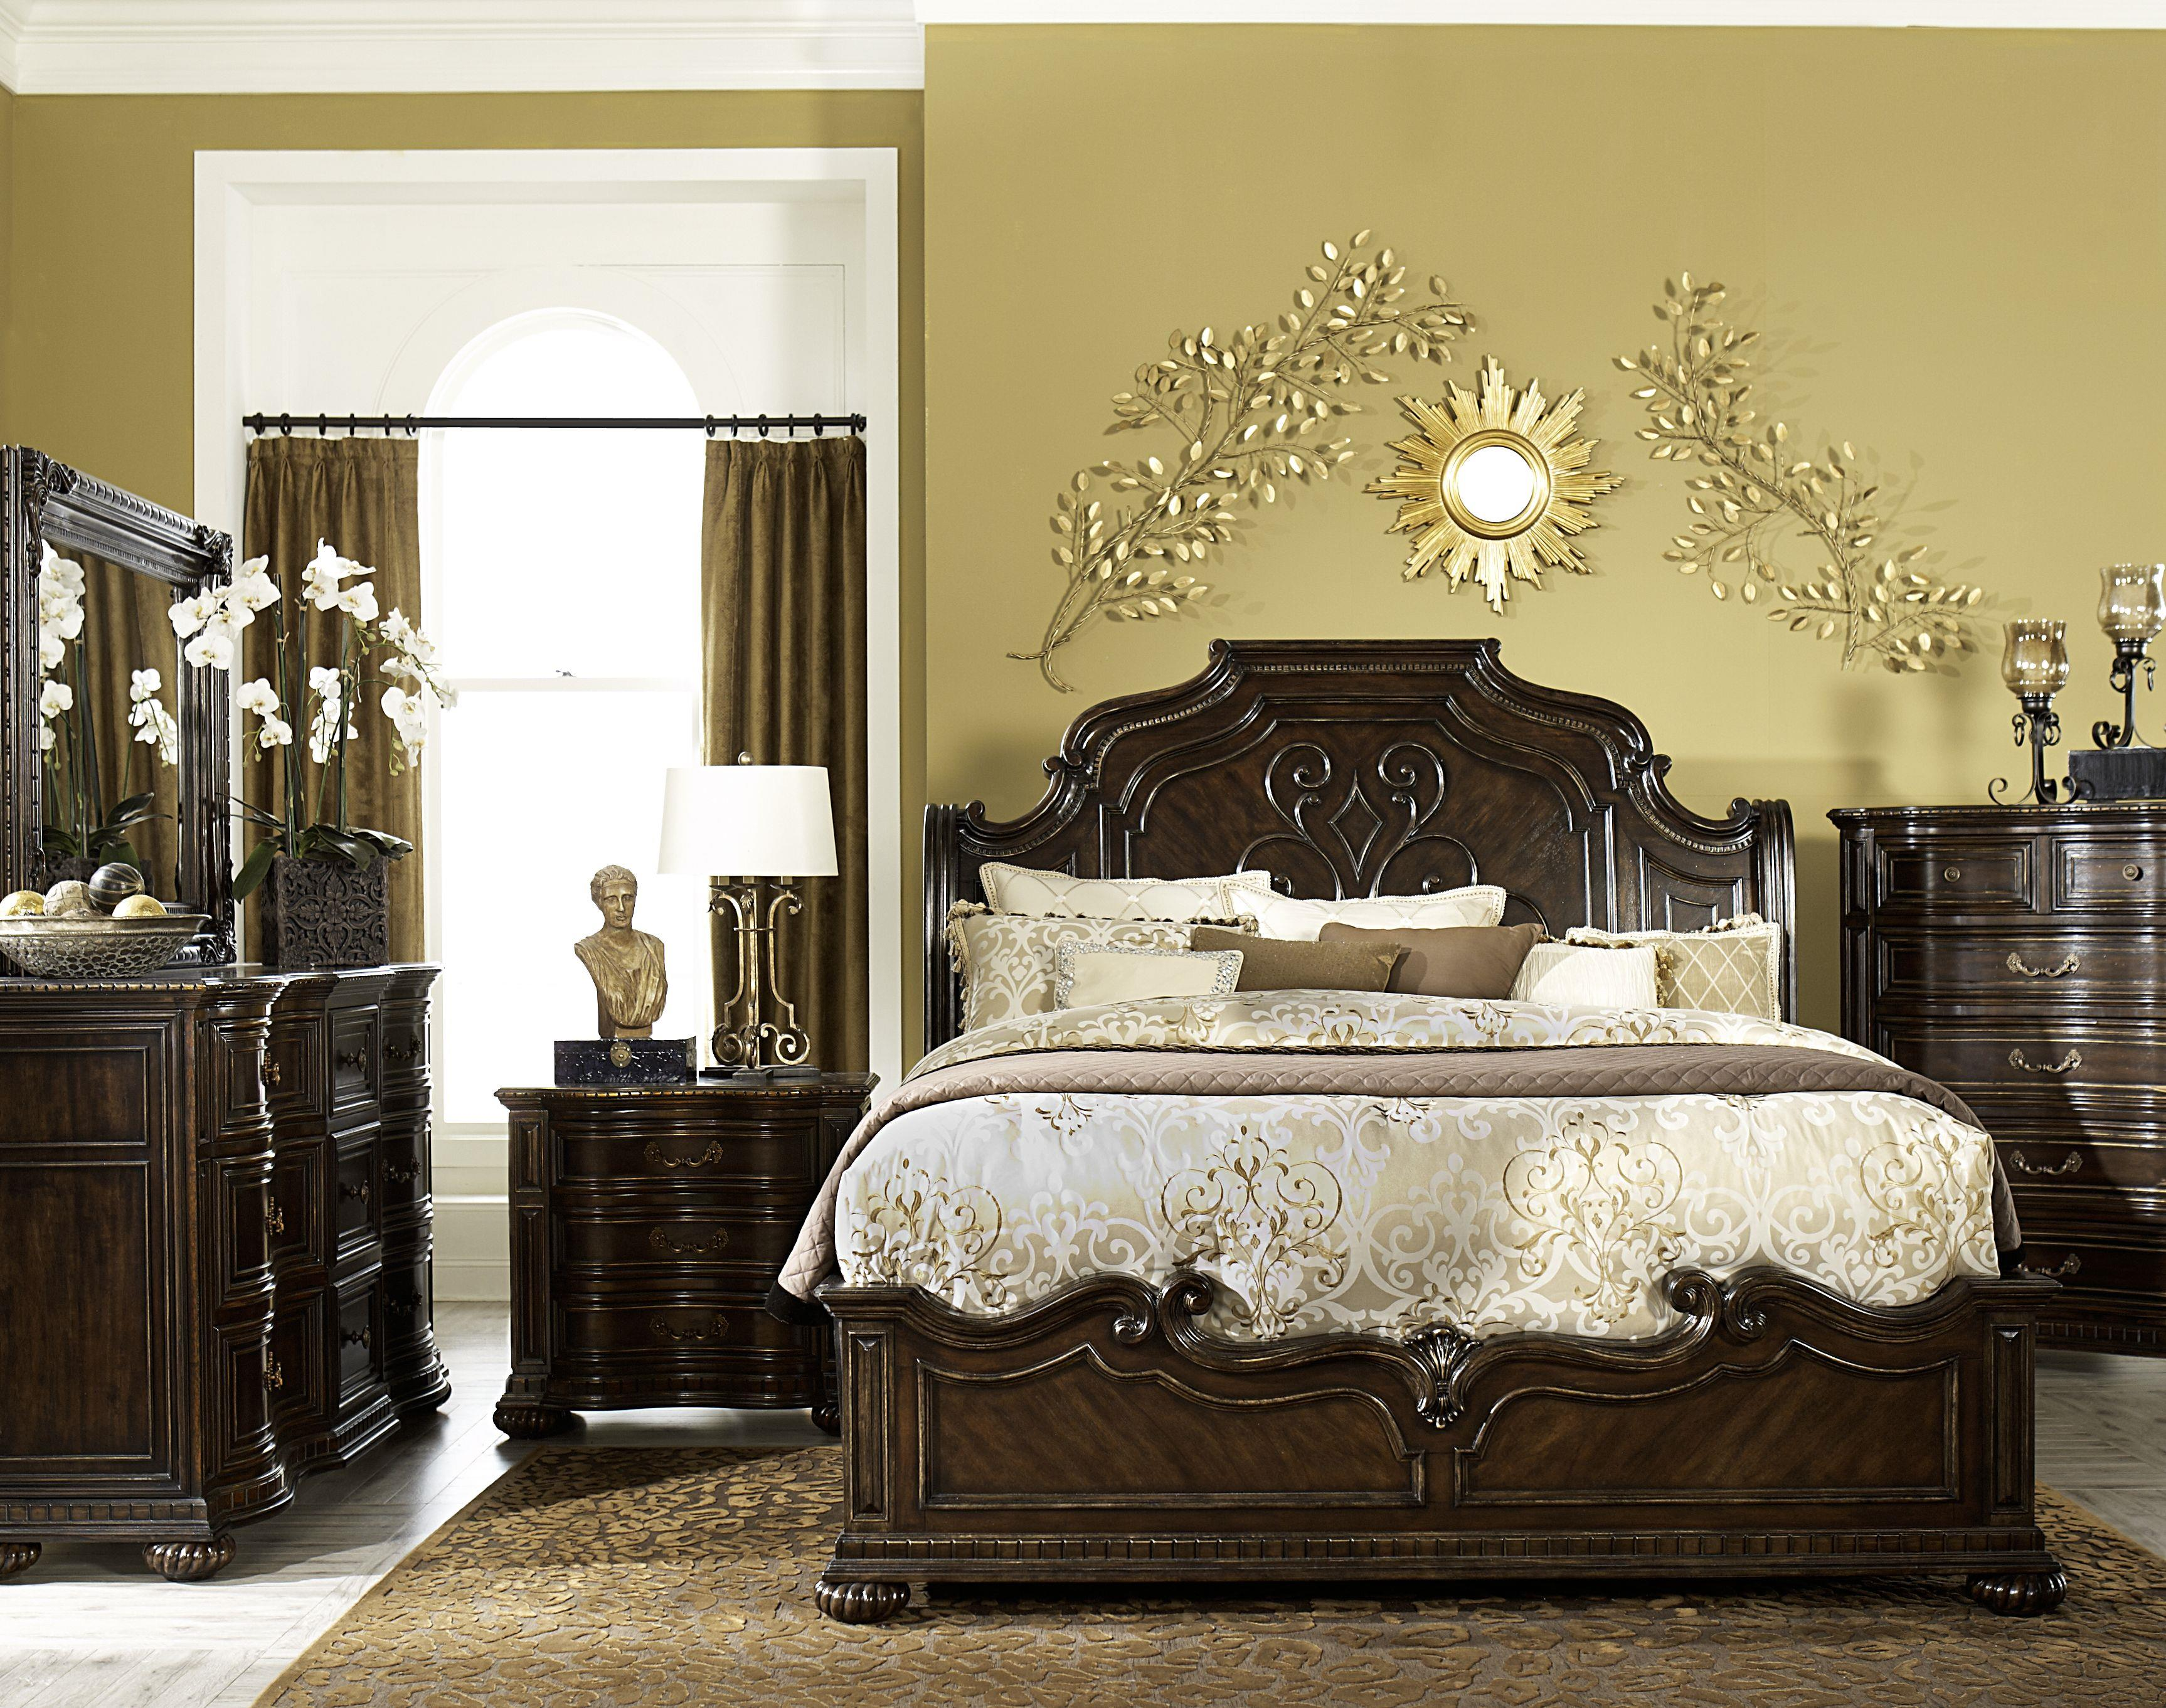 Legacy Classic La Bella Vita King Bedroom Group - Item Number: 4200 K Bedroom Group 3